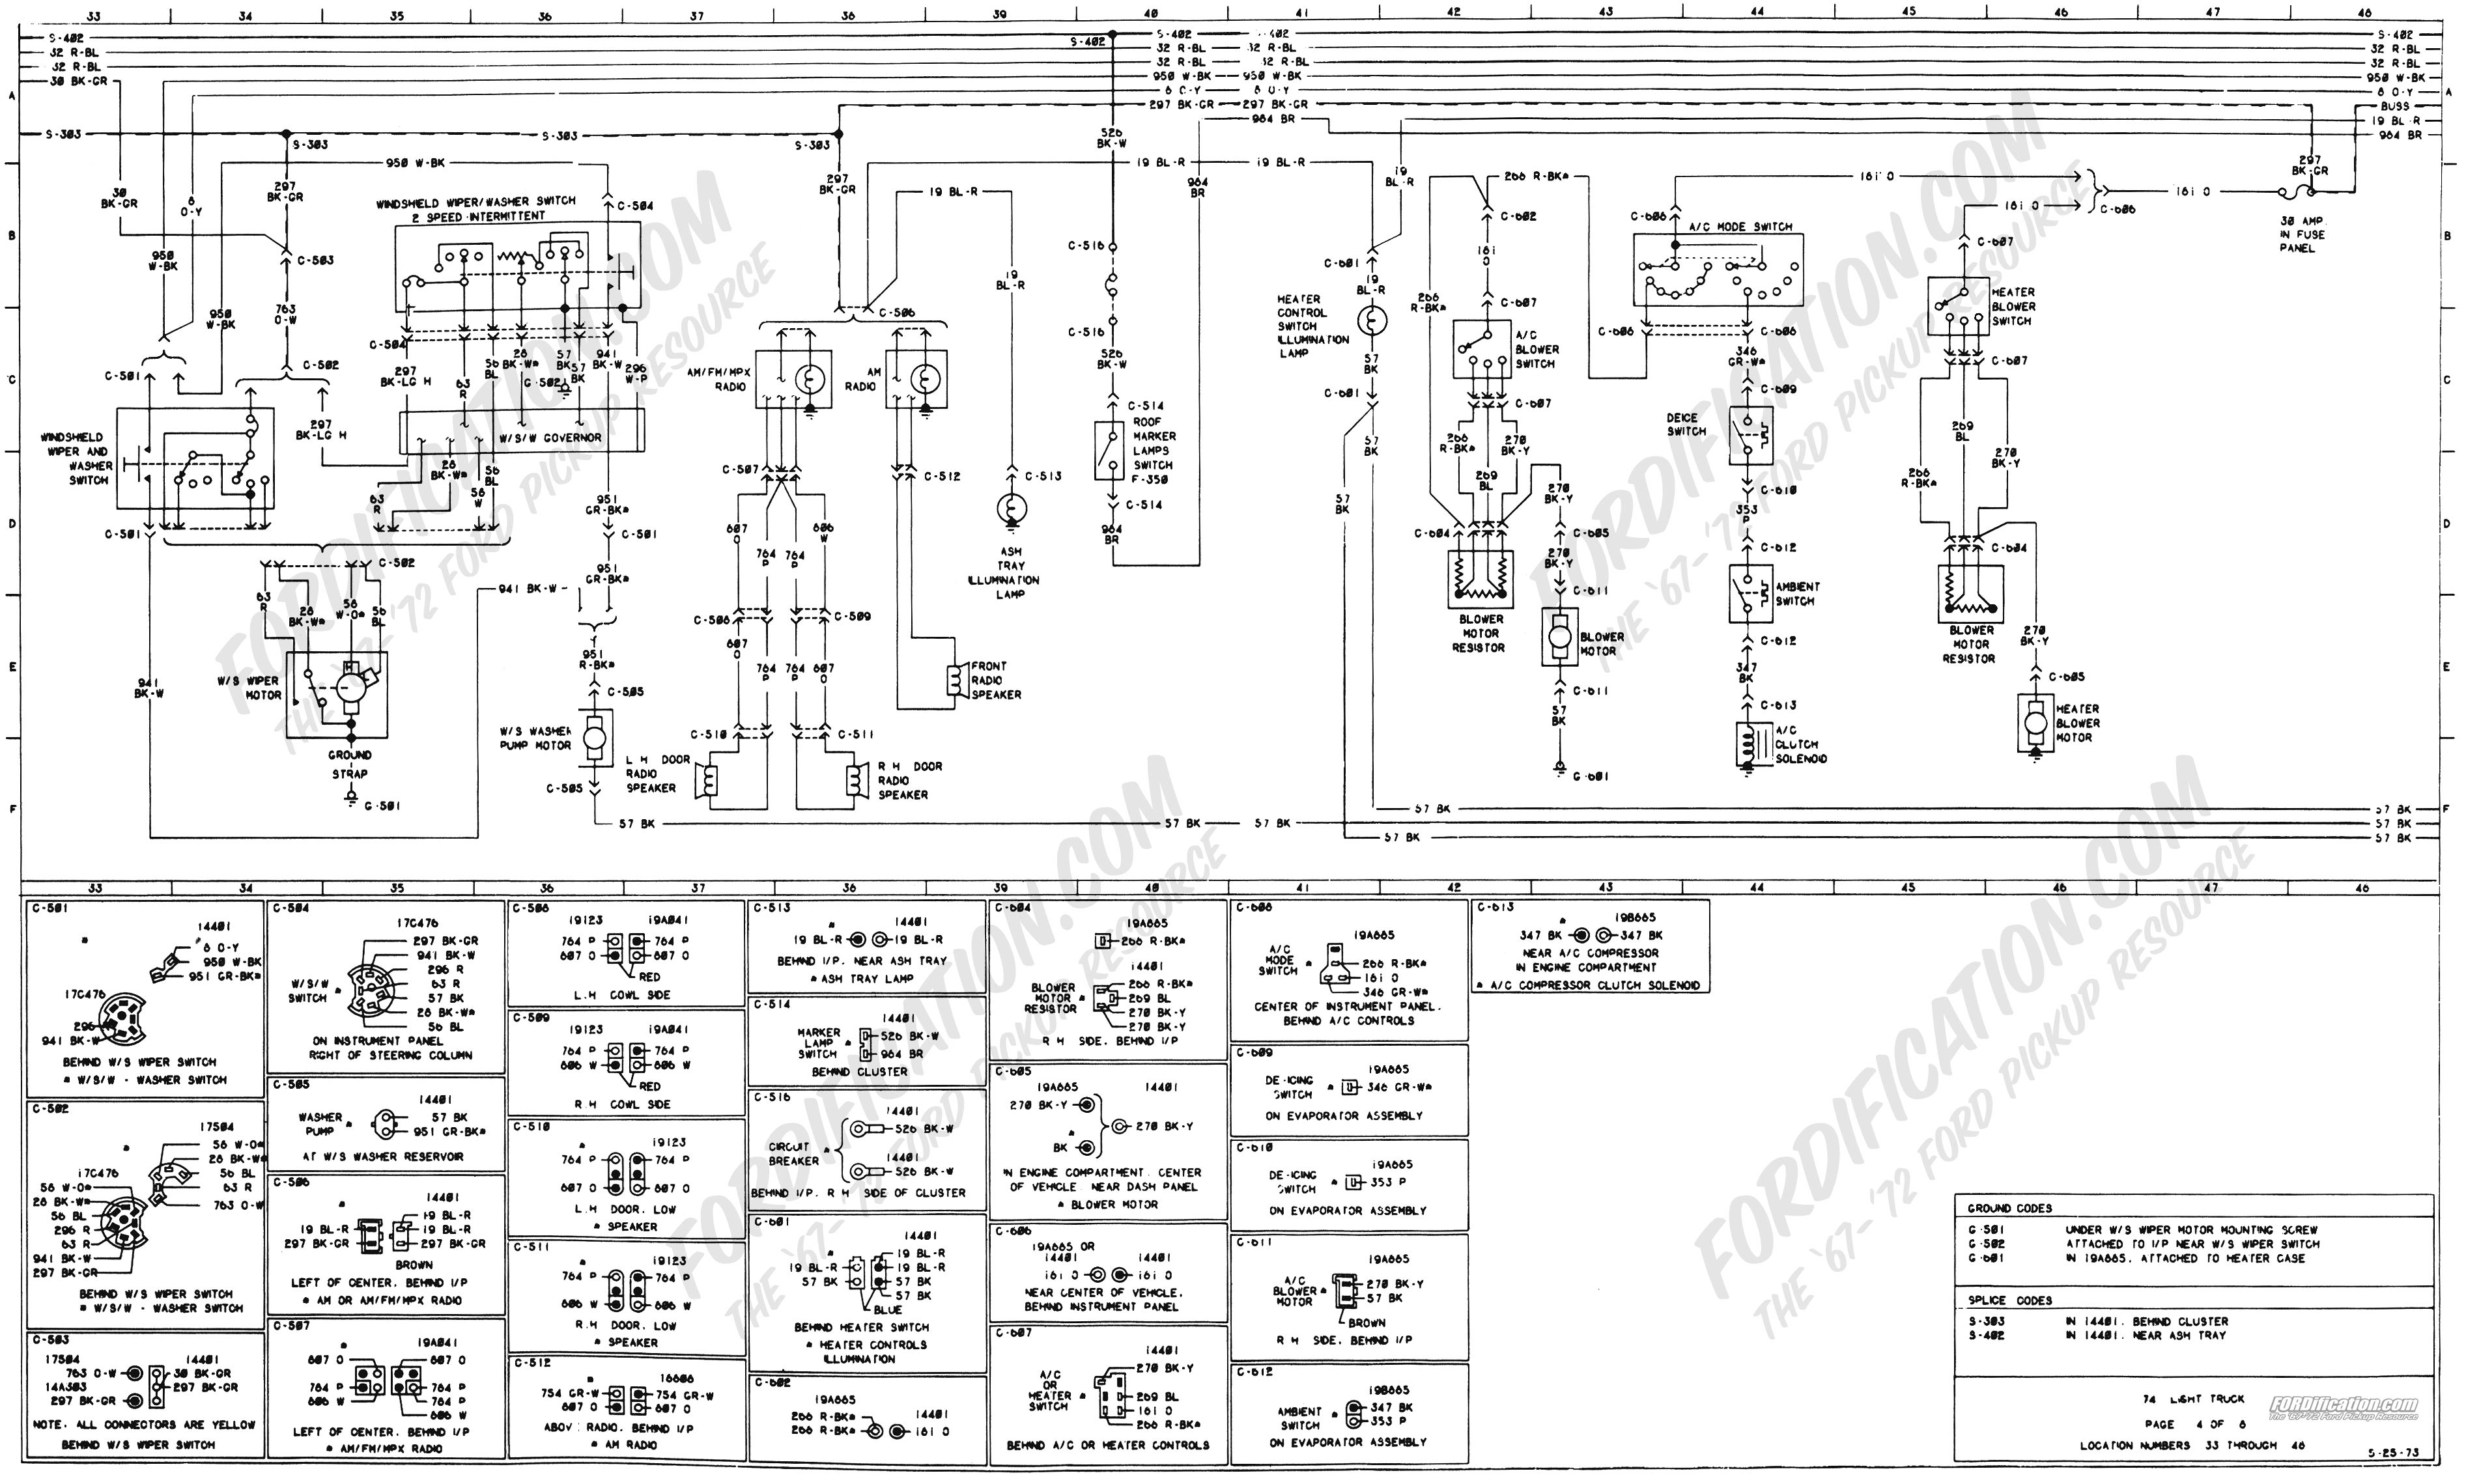 f650 wiring schematic wiring diagram table F750 Wiring Schematic f650 wiring diagram wiring diagram home 2006 ford f650 wiring schematic f650 wiring schematic